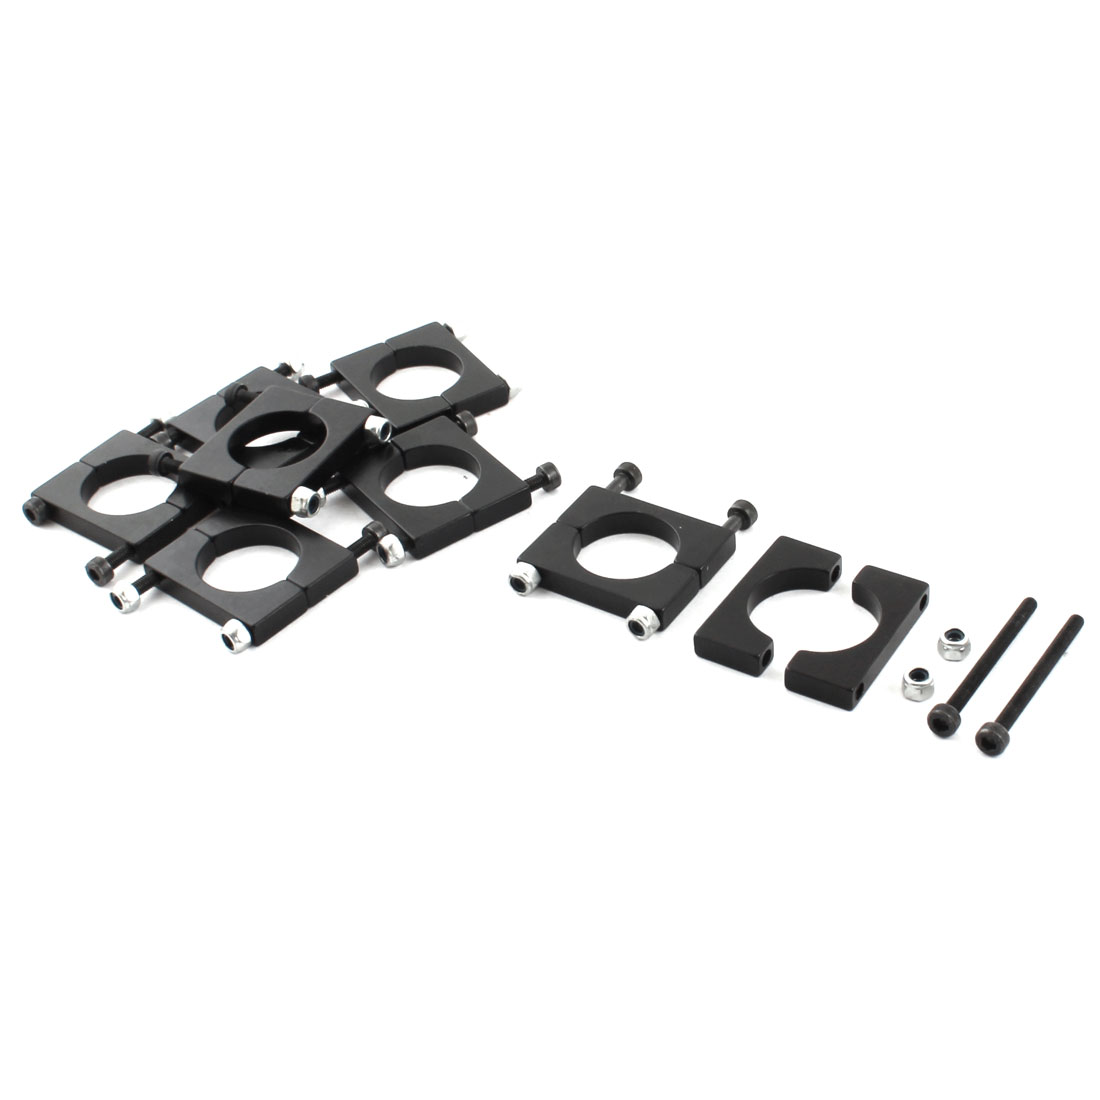 8 Pcs 20mm Black Aluminum Clamp for Carbon Fiber Tube RC Quadcopter Hexrcopter